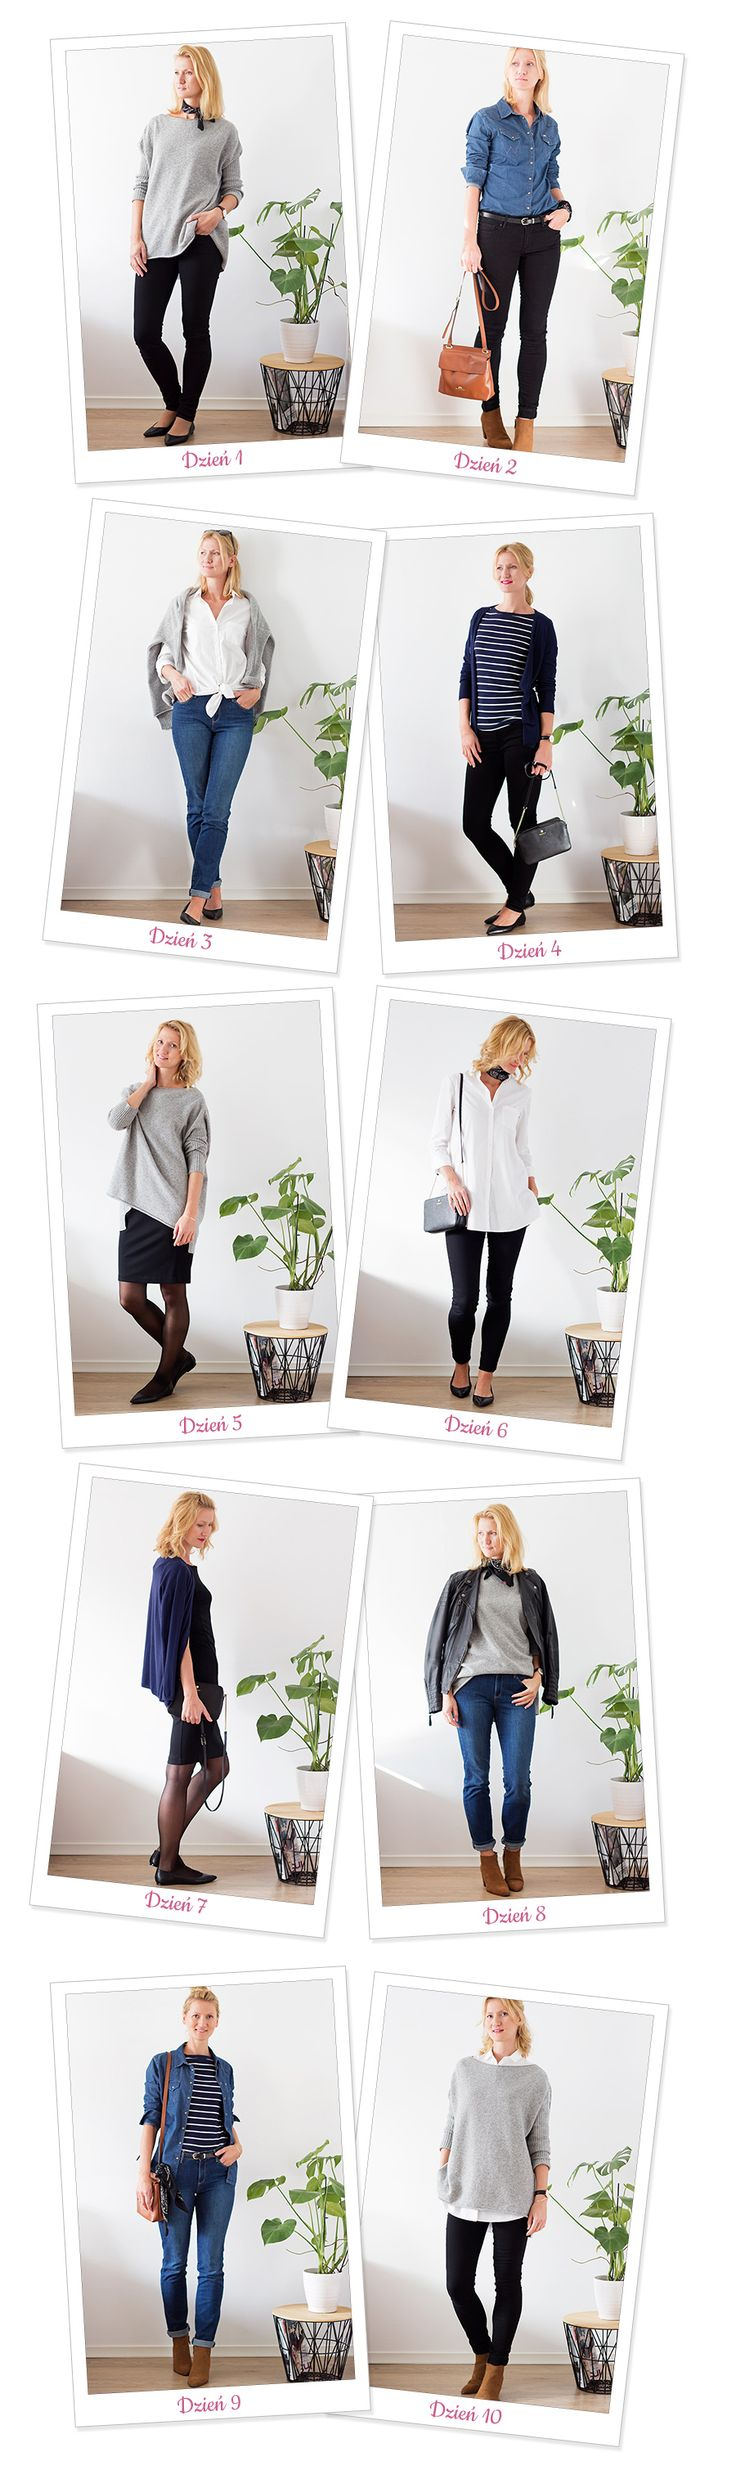 Podsumowanie wyzwania 10x10. Capsule wardrobe, 10 outfits out of 10 pieces of clothes.